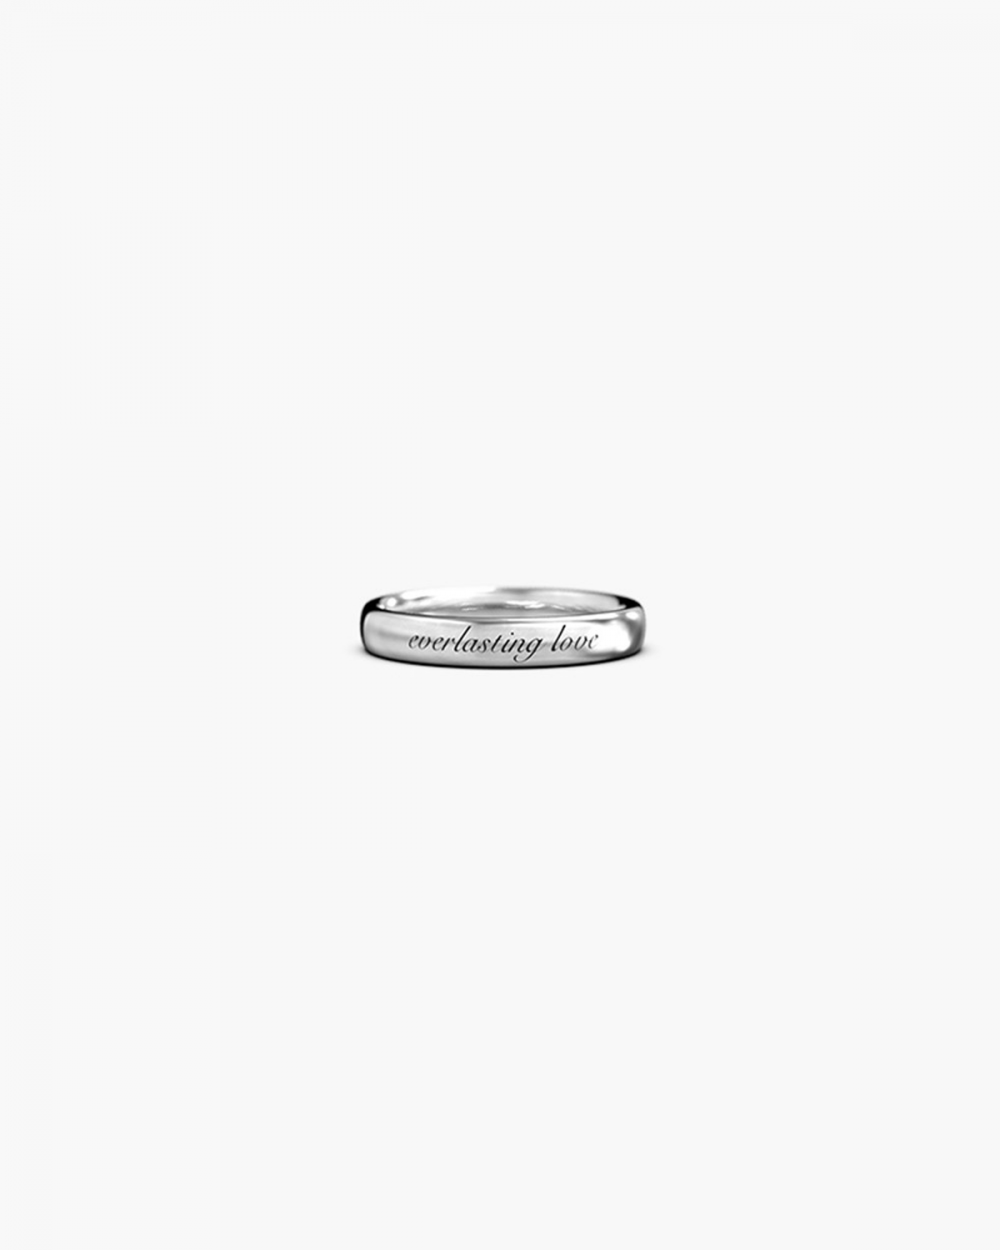 MYNOVE25 WEDDING RING NOVE25